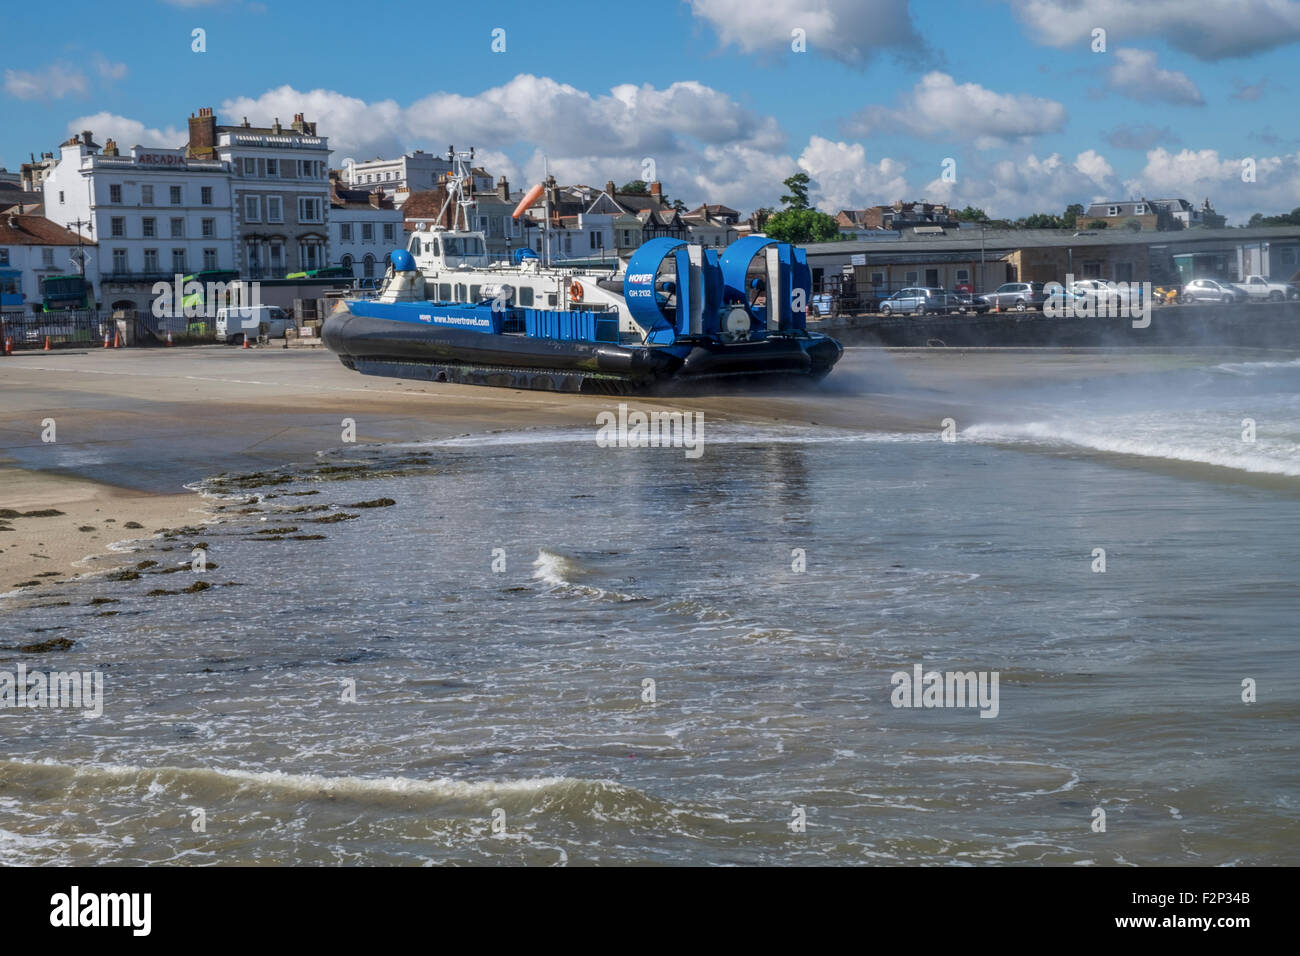 Hovercraft ferry on the quayside which has just starting to power up, - Stock Image